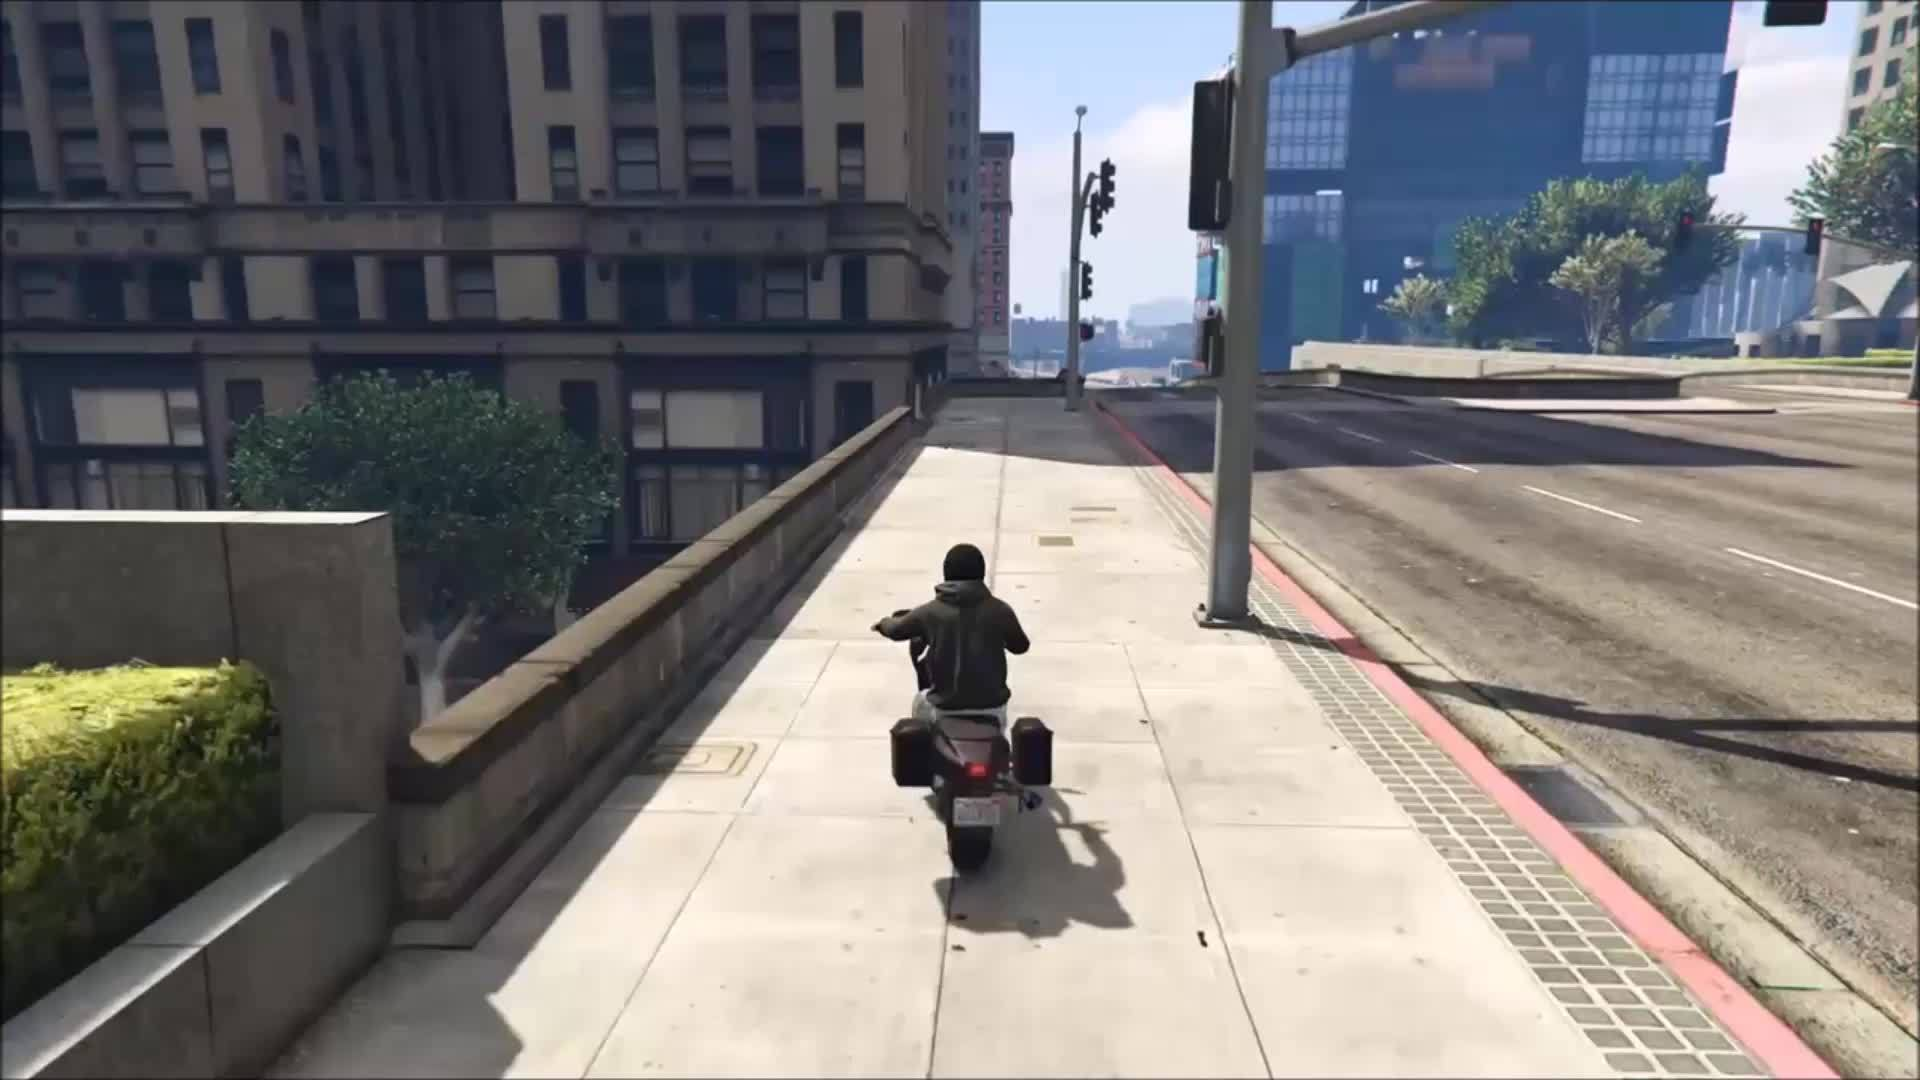 GTAV, GamePhysics, GrandTheftAutoV, 1080 gifs much too big to fit in regular browser window. Perhaps large gifs should auto resize to window? (reddit) GIFs